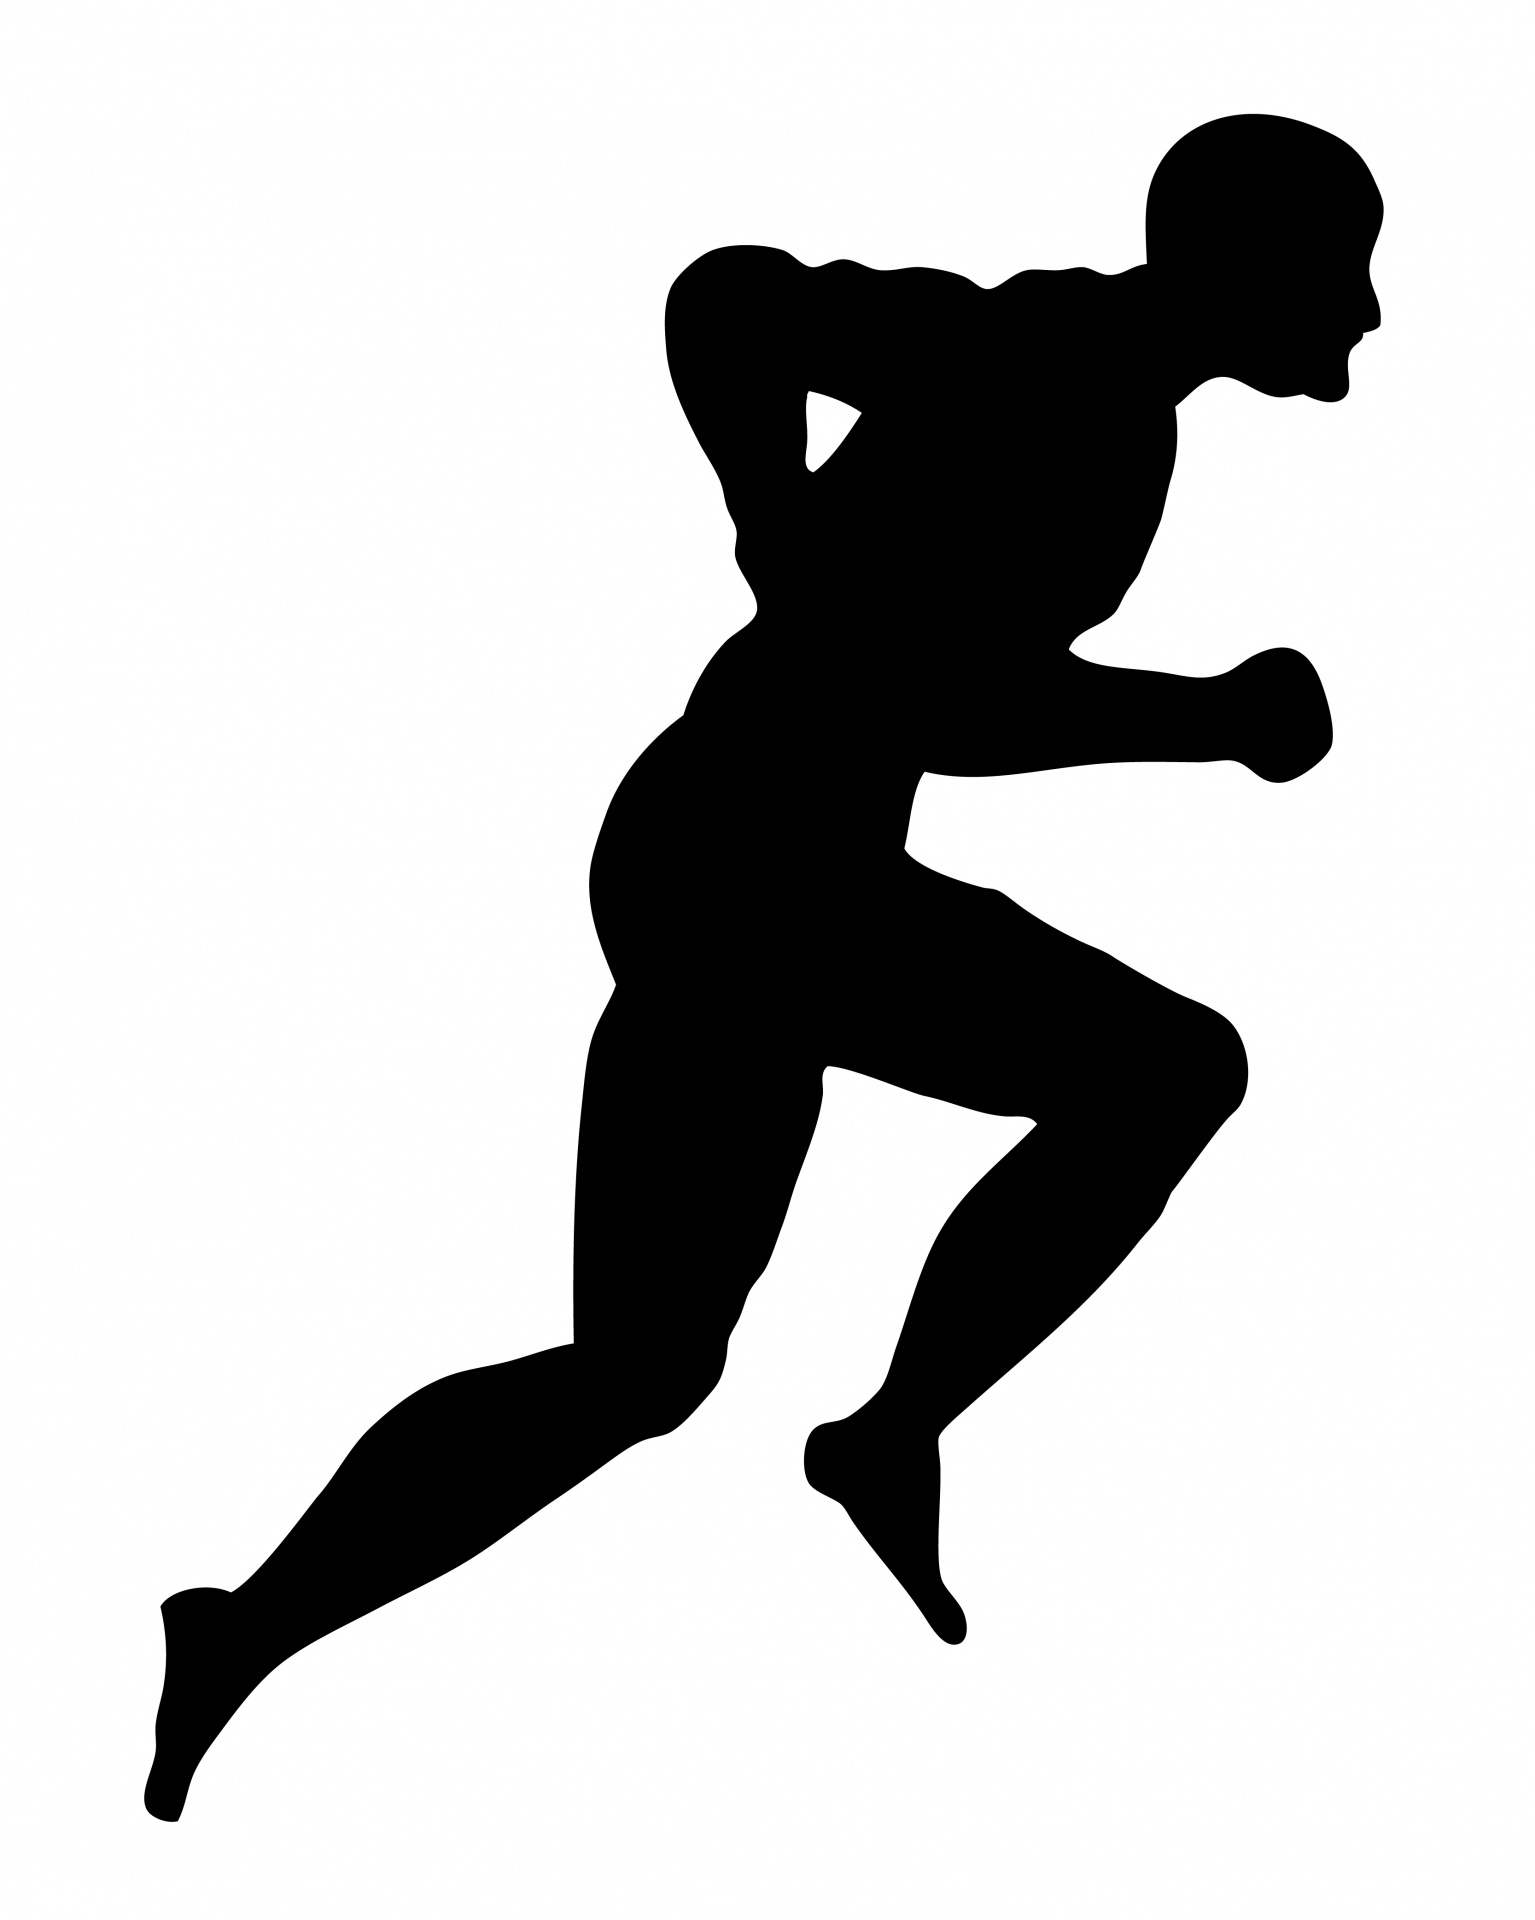 Running Man Silhouette Clipart Free Stock Photo.